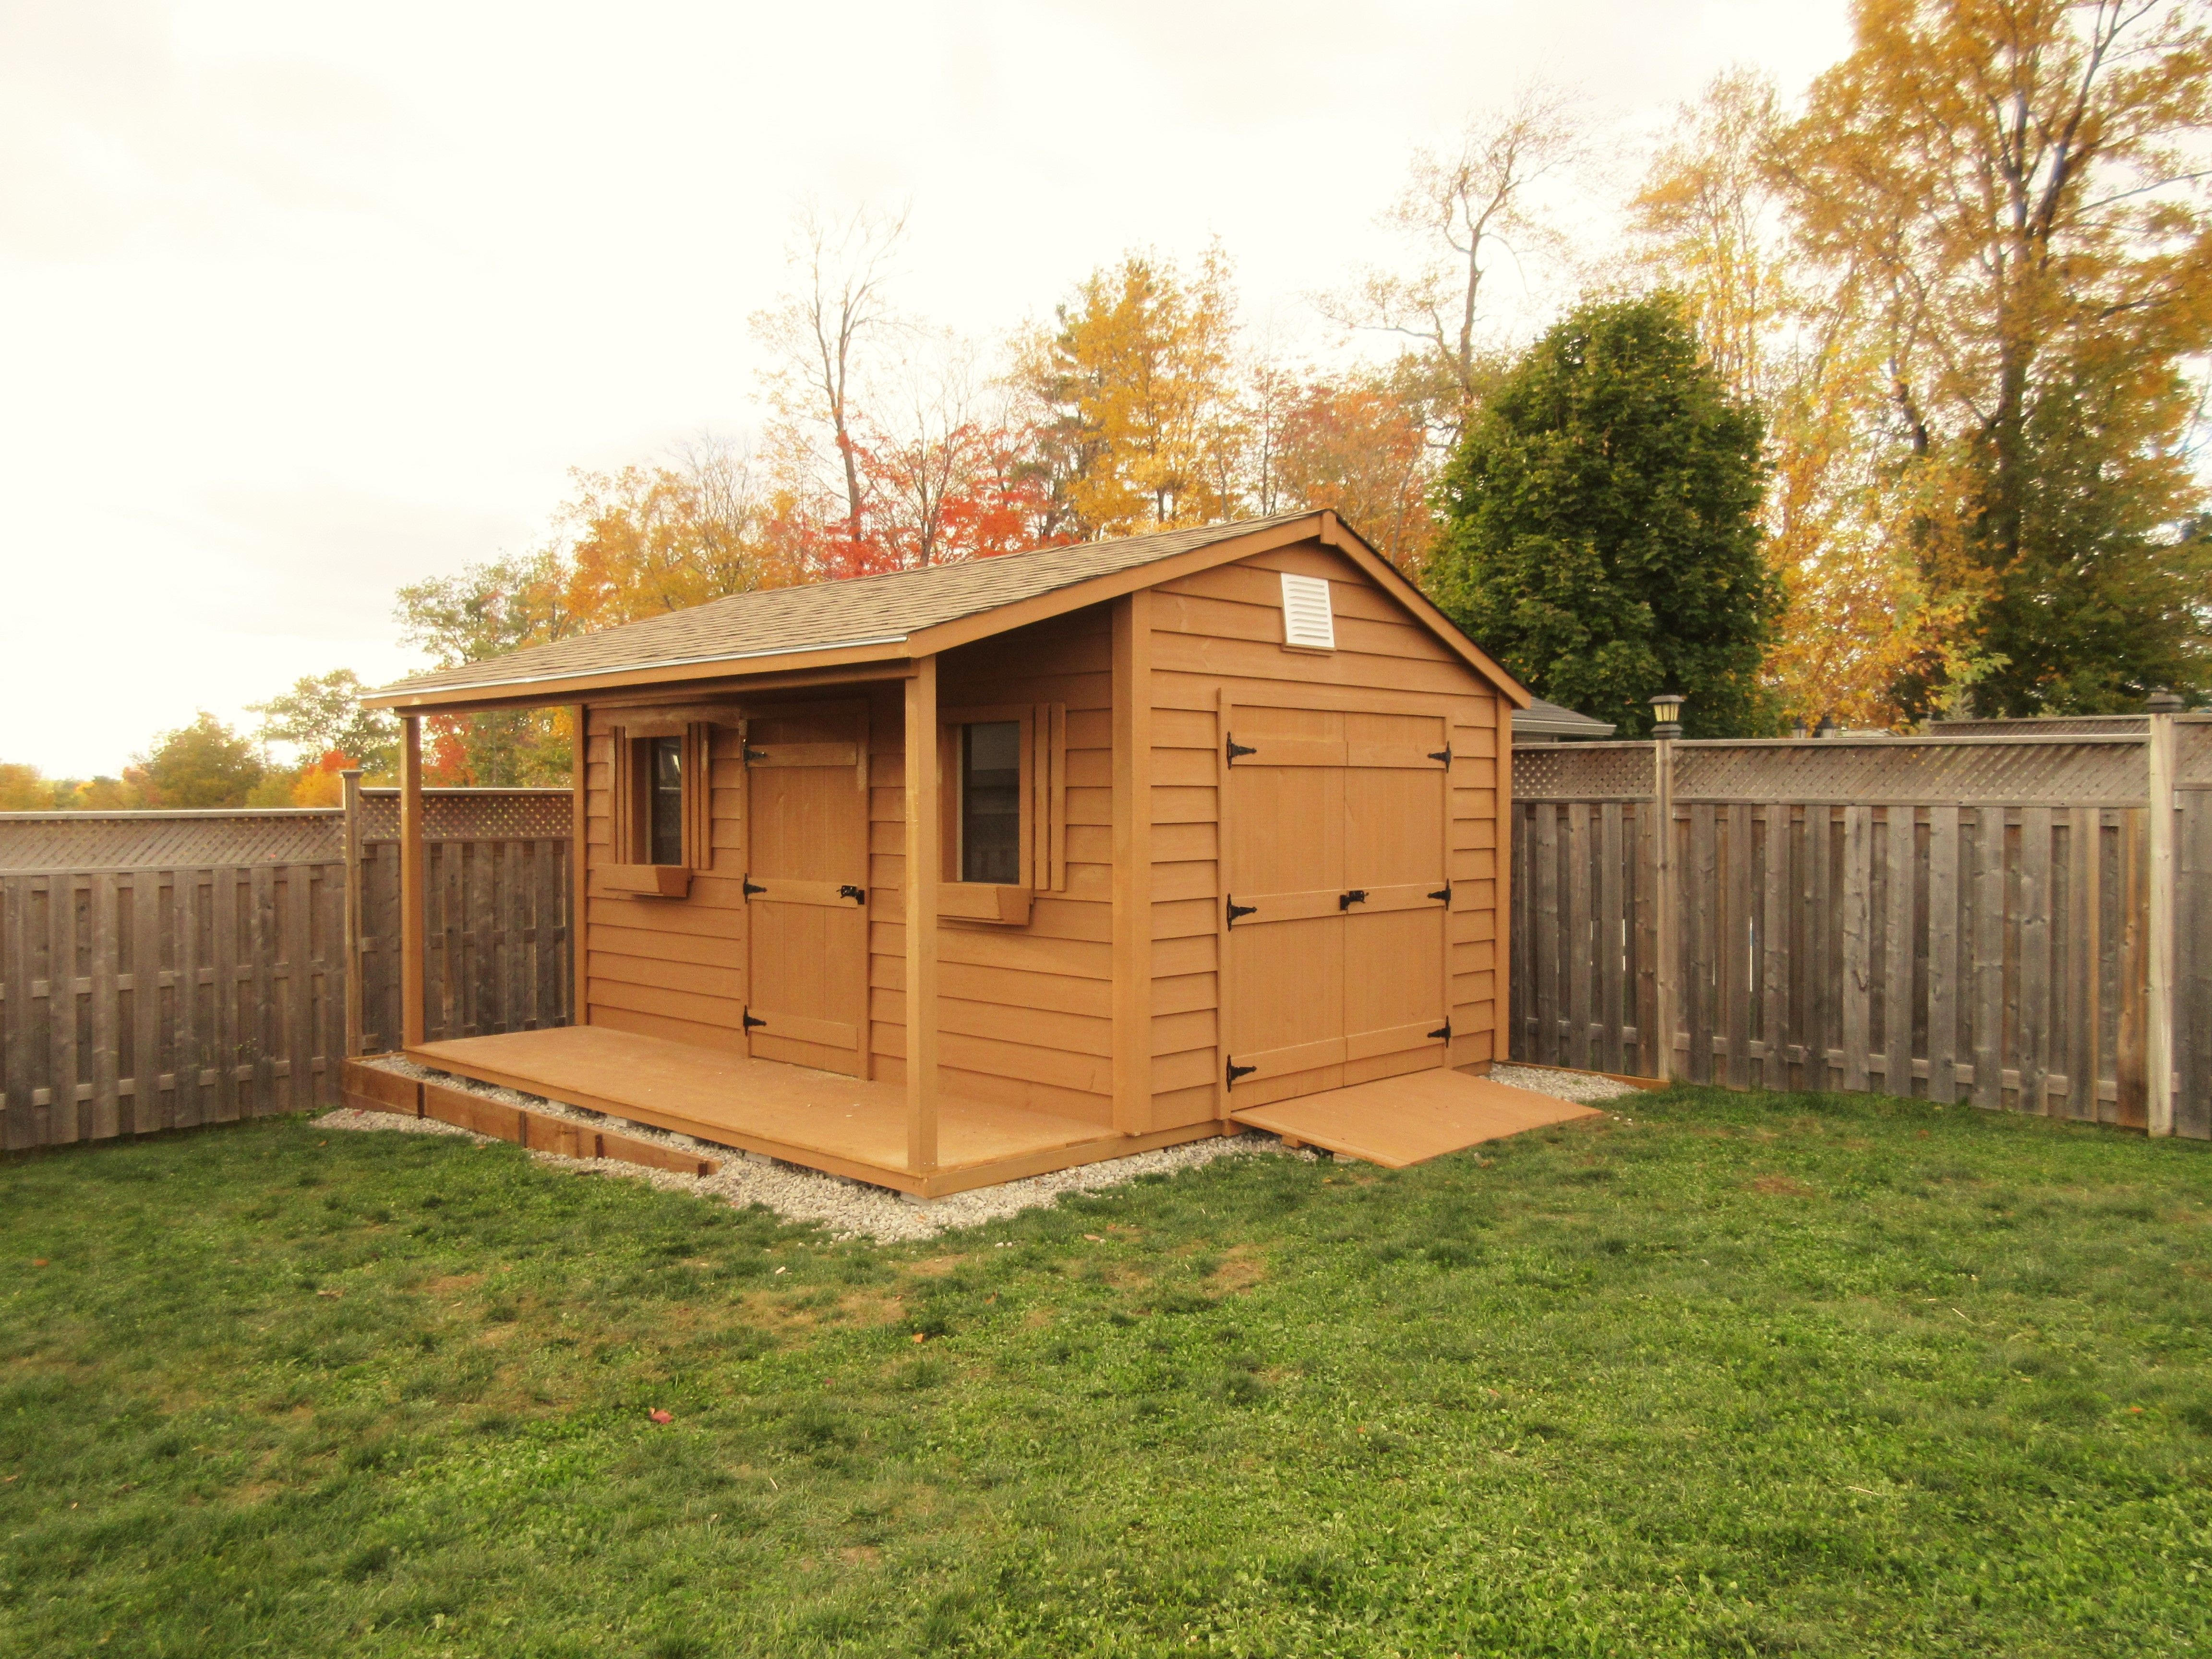 10x14 with 4 foot side porch and double doors shed with on extraordinary unique small storage shed ideas for your garden little plans for building id=95744